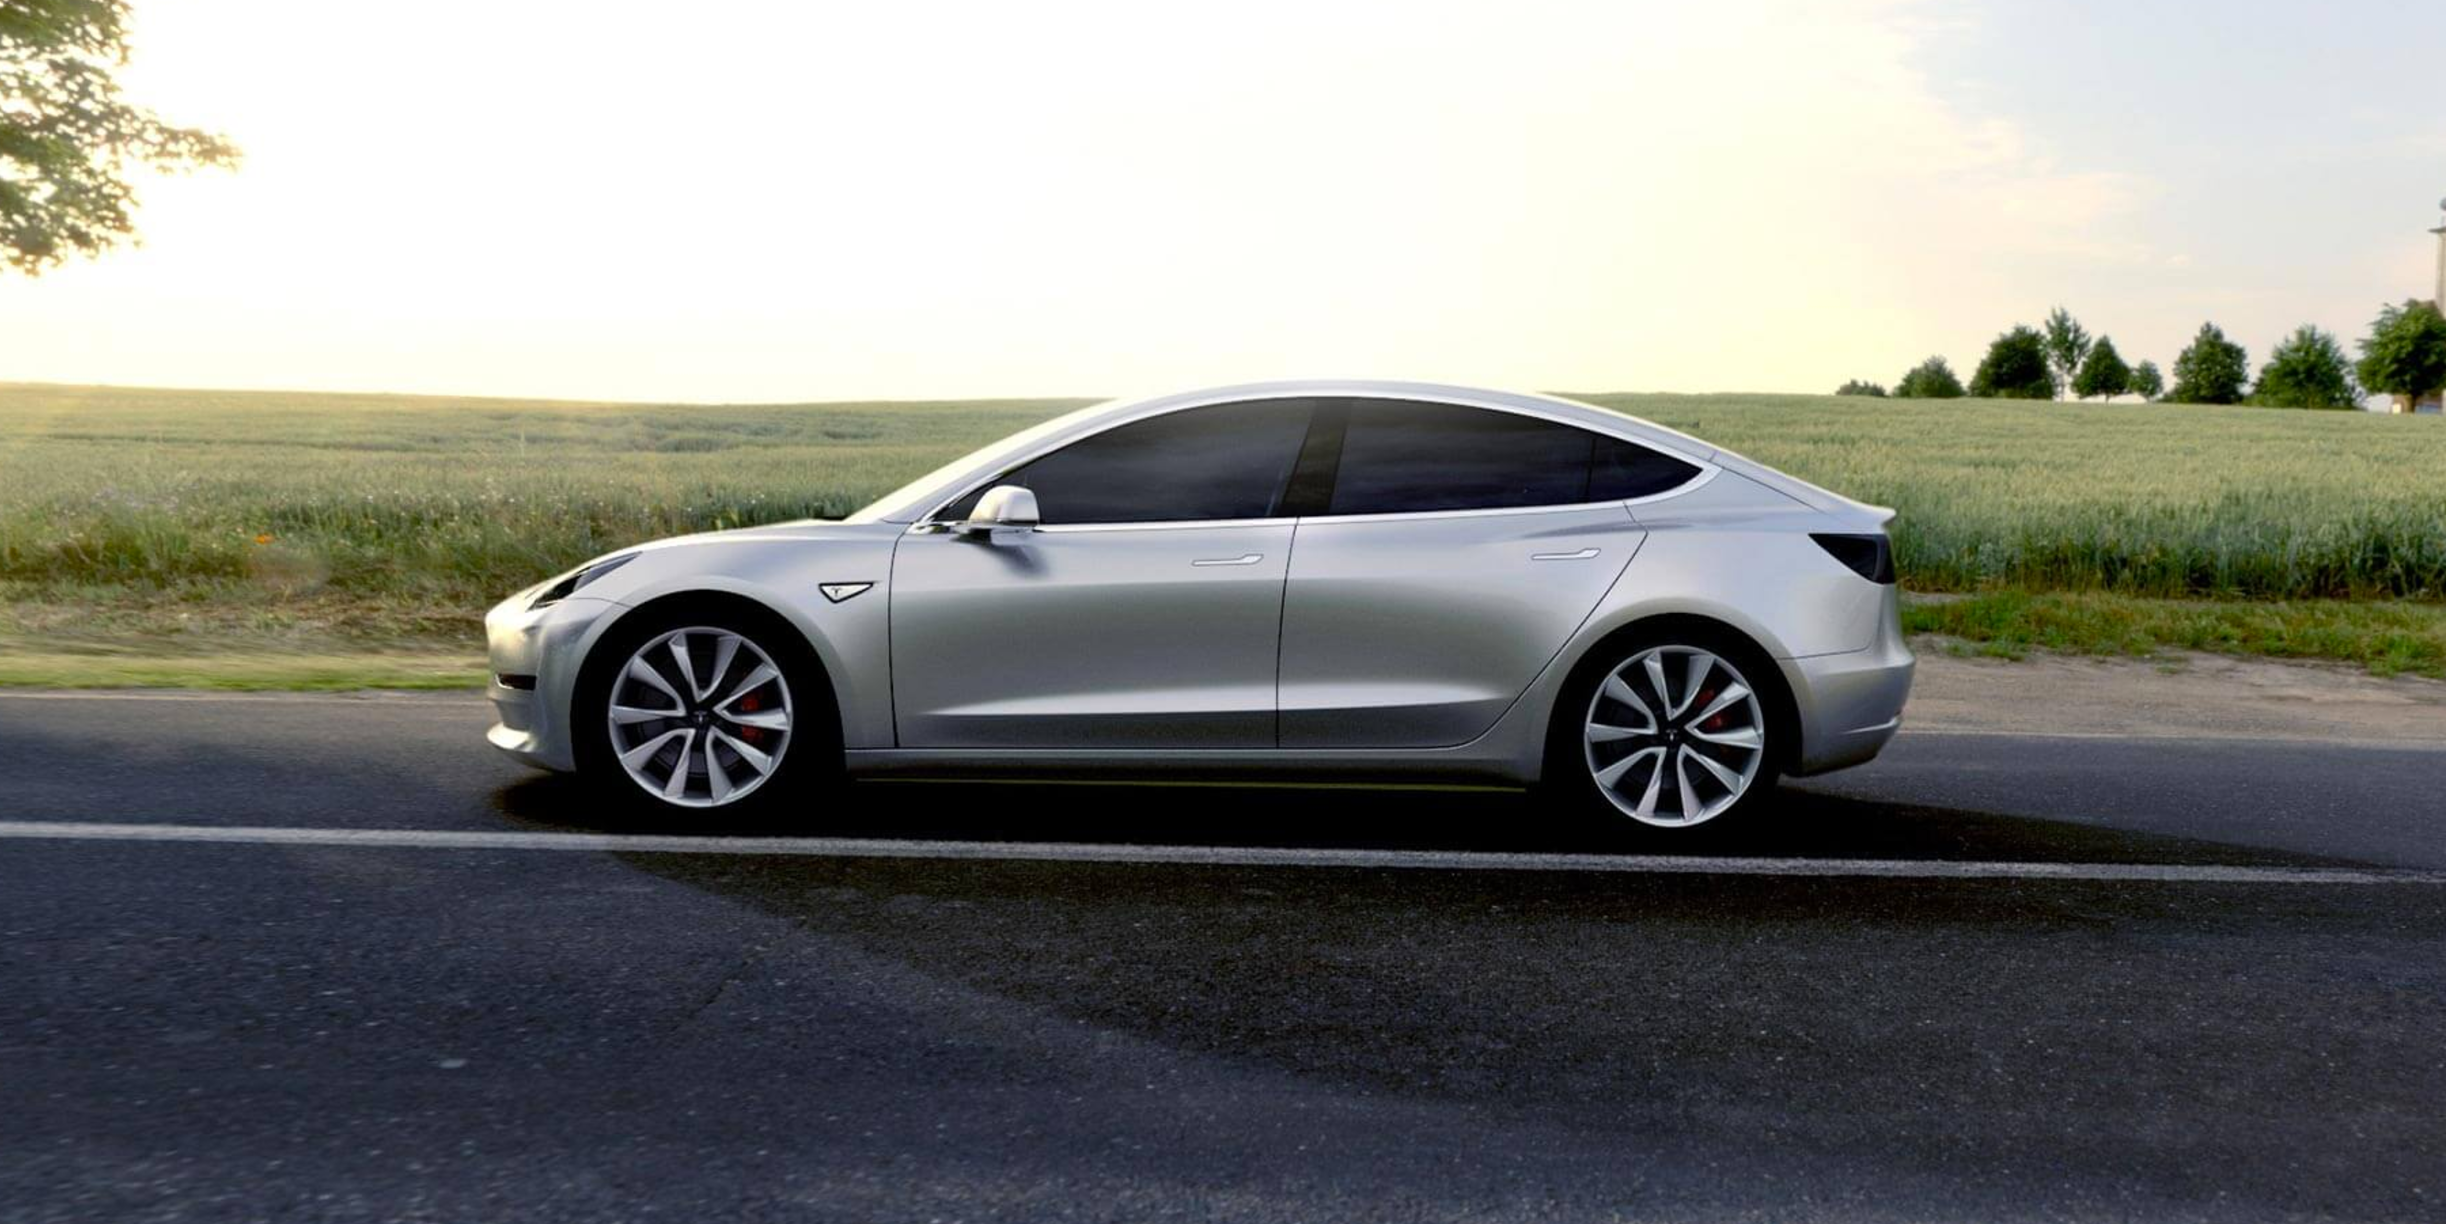 Tesla Model 3 Prototype Photo Hints at Pre-Order Color Options